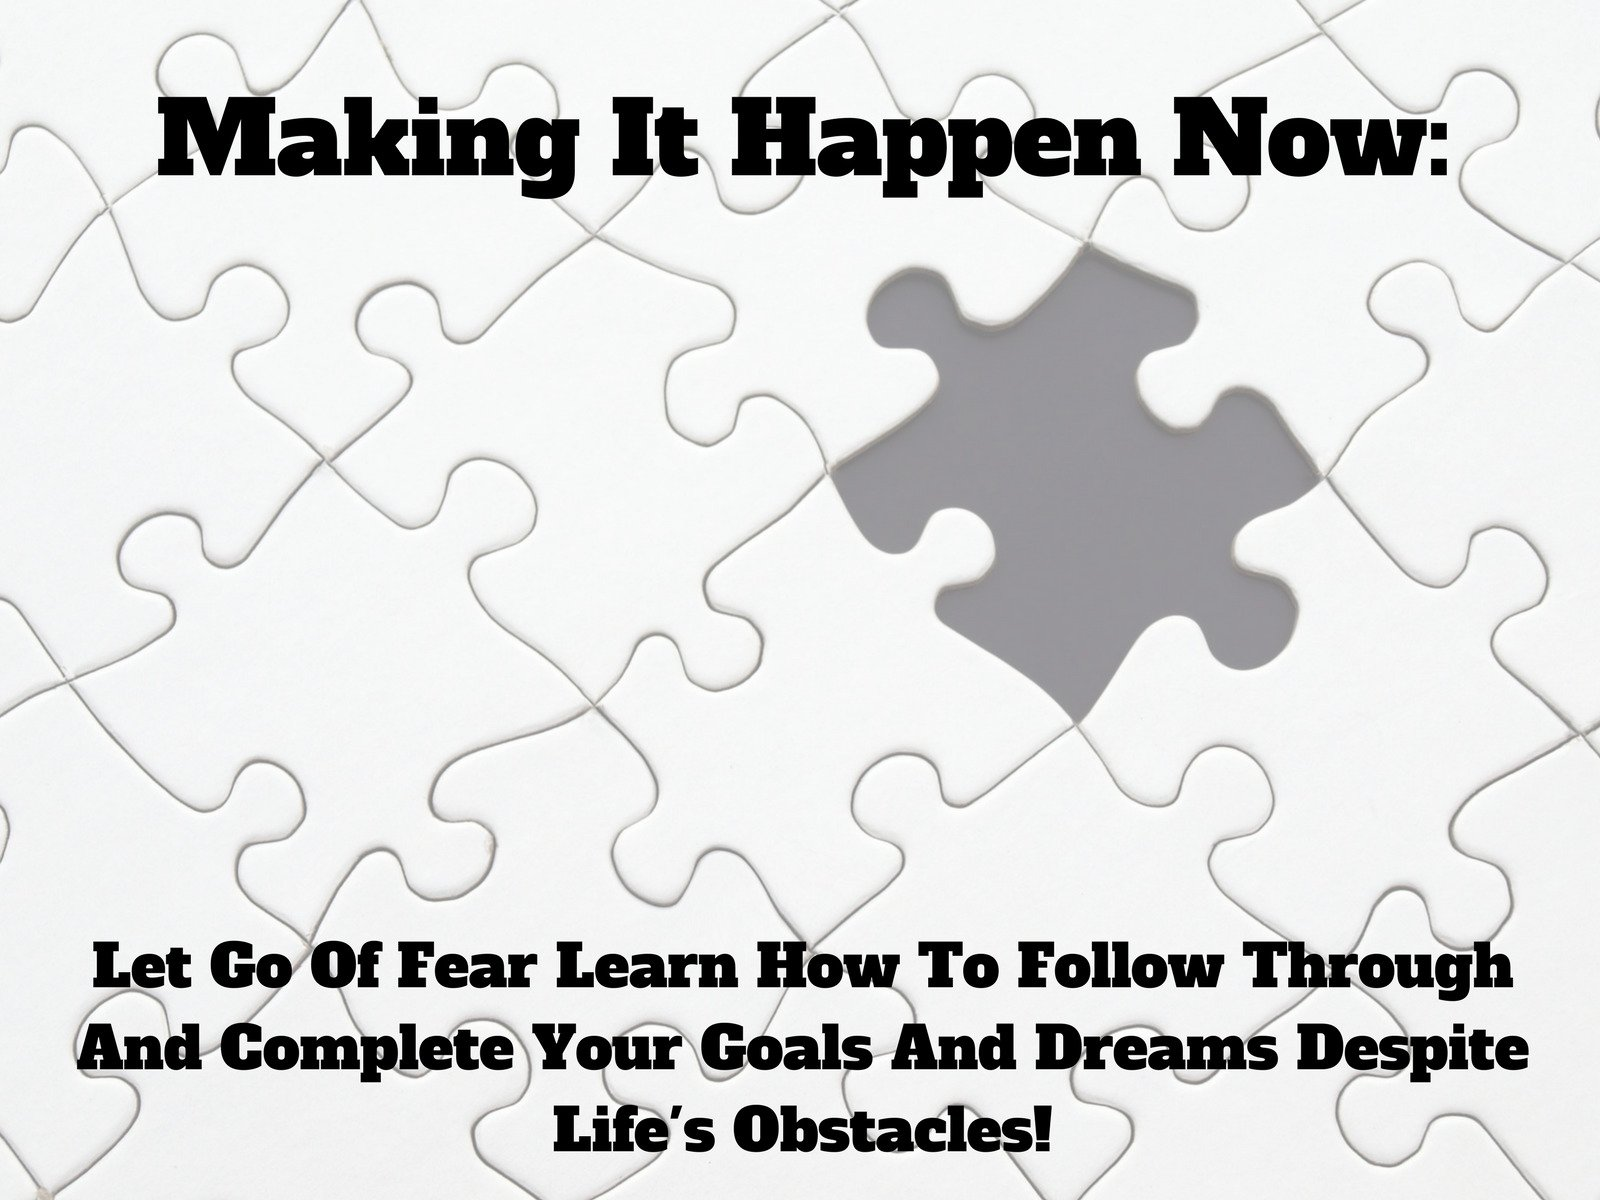 Making It Happen Now: Let Go Of Fear Learn How To Follow Through And Complete Your Goals And Dreams Despite Life's Obstacles! - Season 1